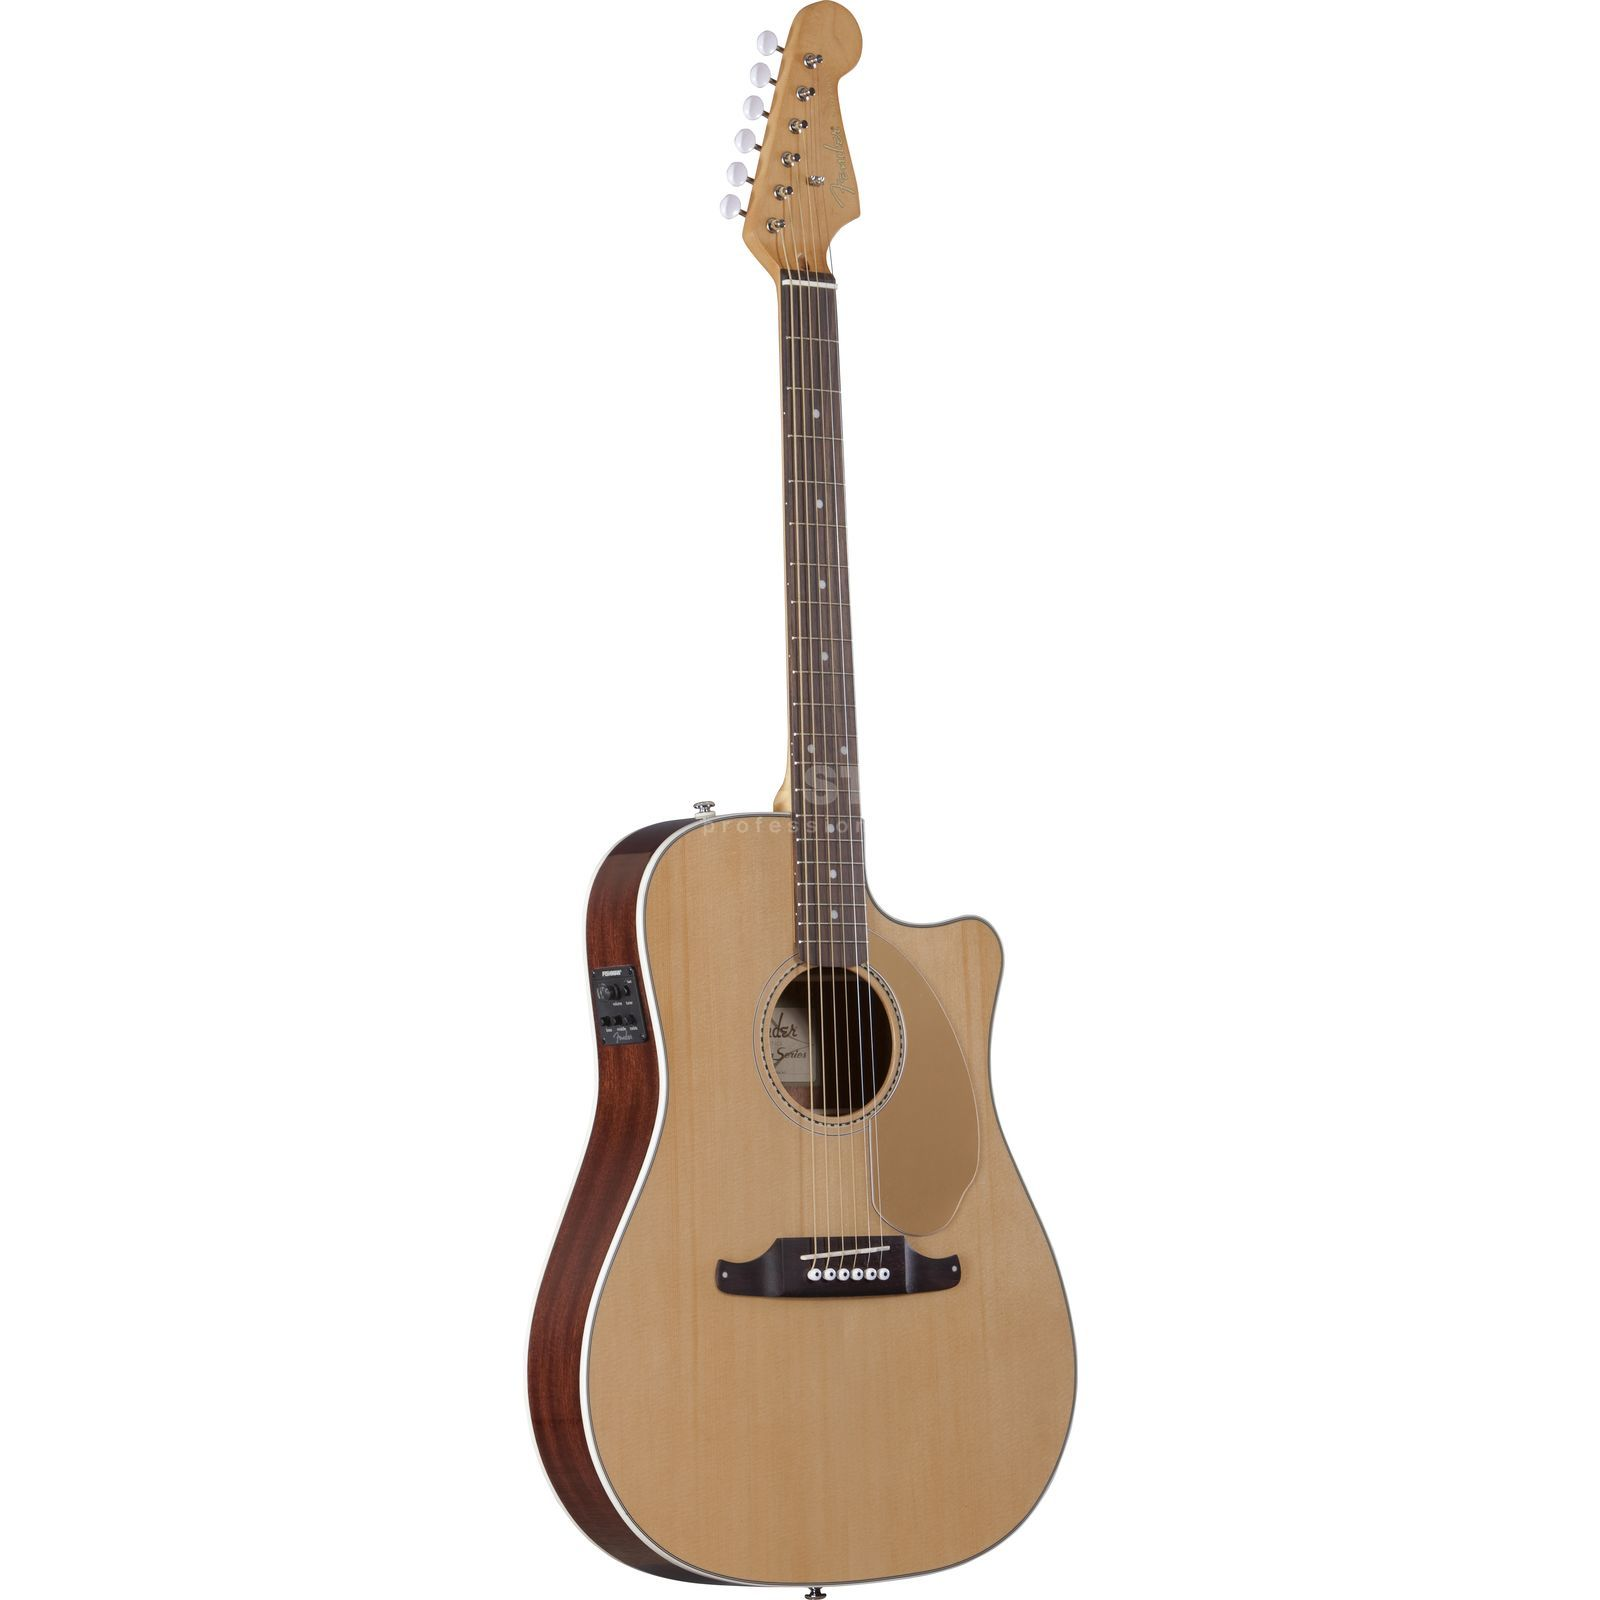 Fender Sonoran SCE Thinline Natural Solid top, Fishman Isys III Produktbillede